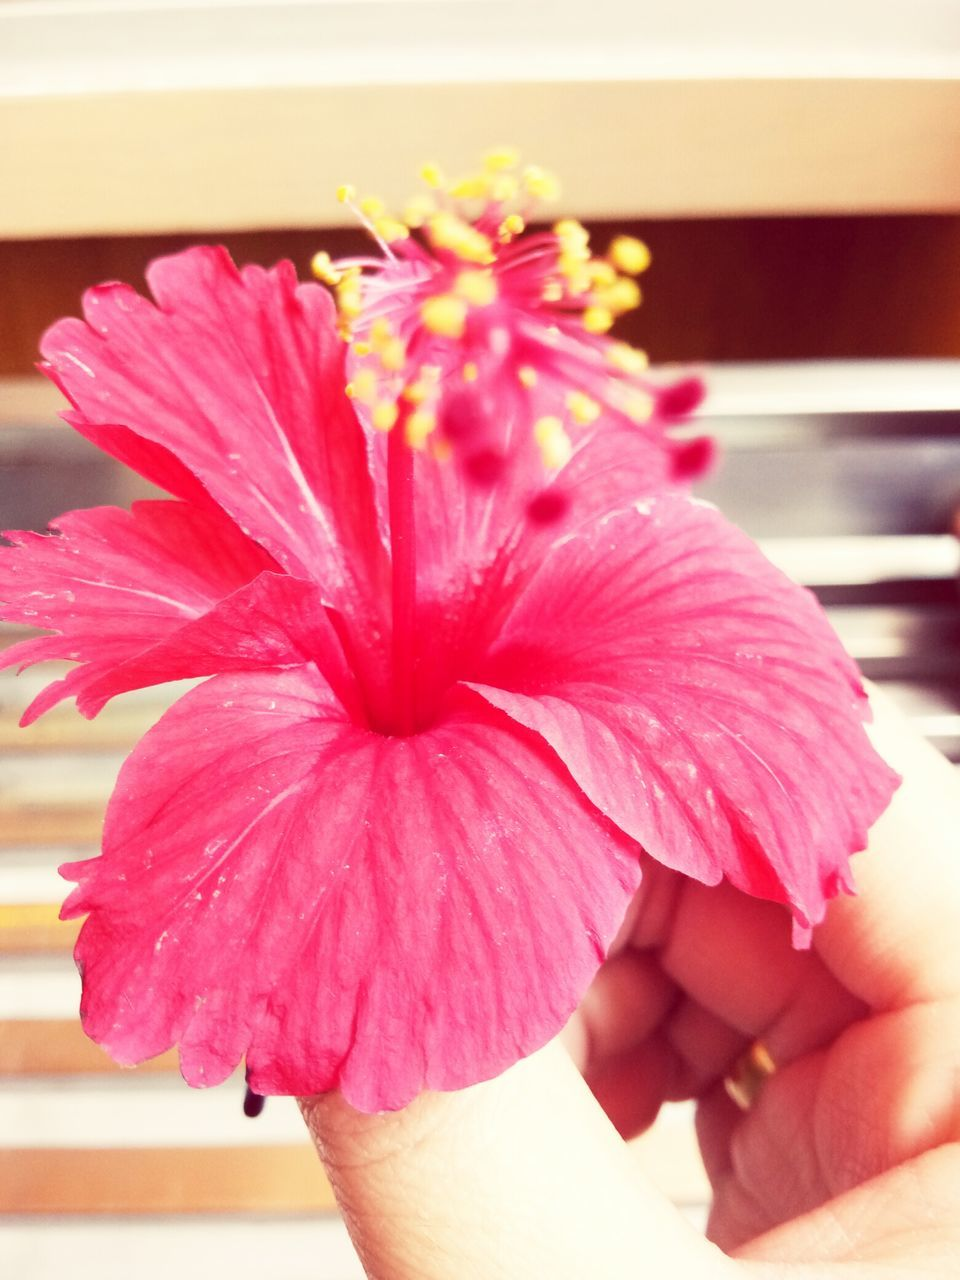 human hand, human body part, real people, flower, one person, human finger, close-up, fragility, focus on foreground, holding, petal, lifestyles, flower head, pink color, day, freshness, indoors, nature, beauty in nature, people